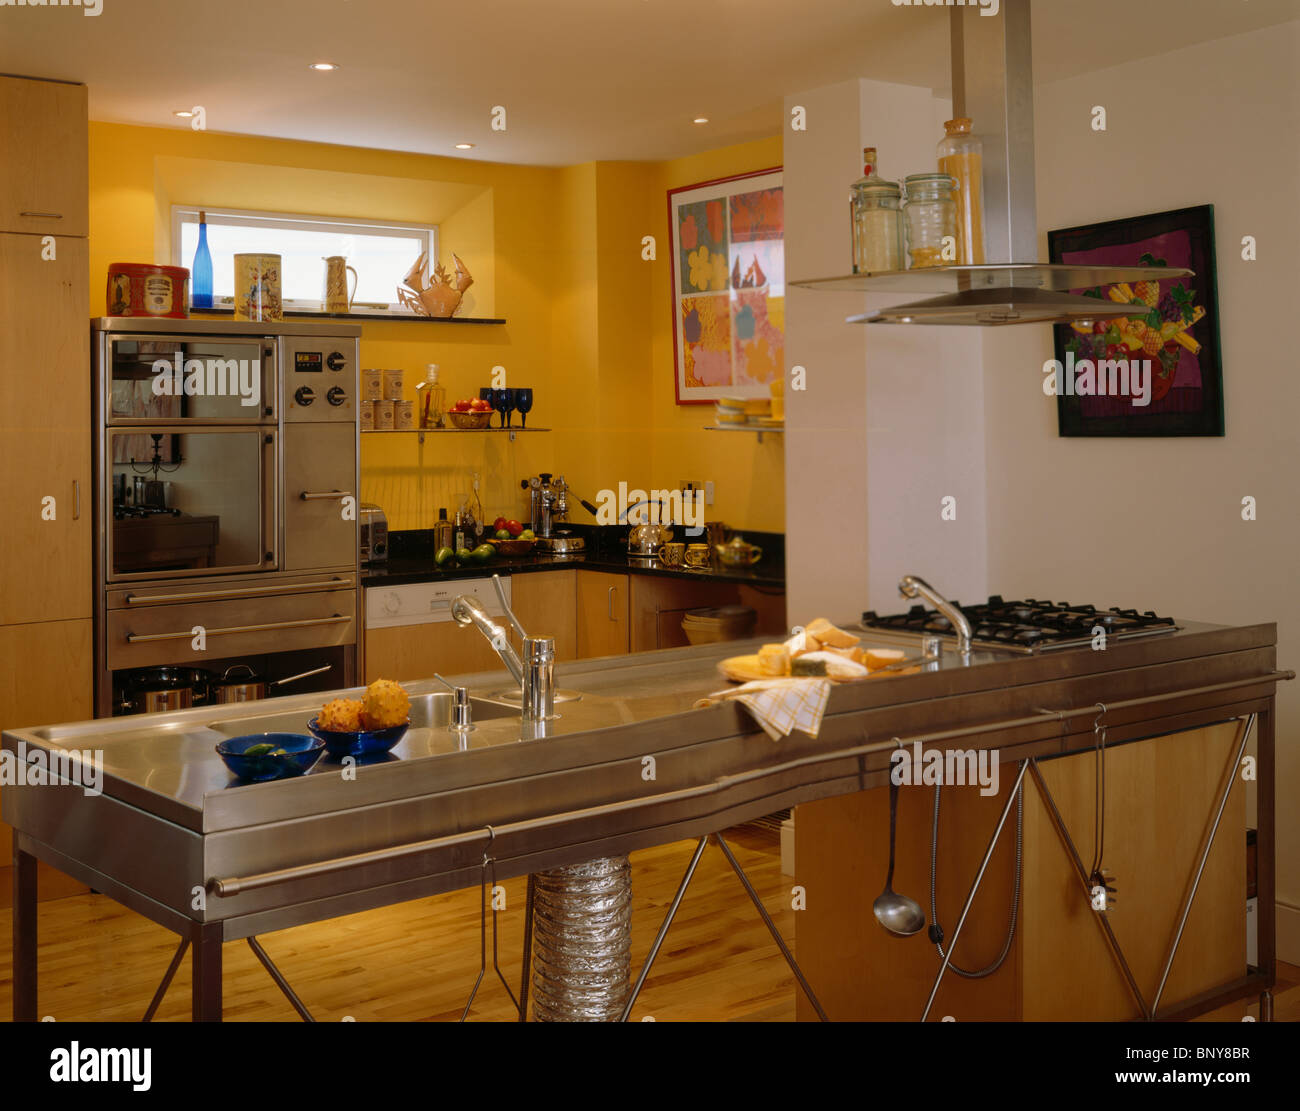 Stainless Steel Freestanding Double Sink And Hob Unit In Modern